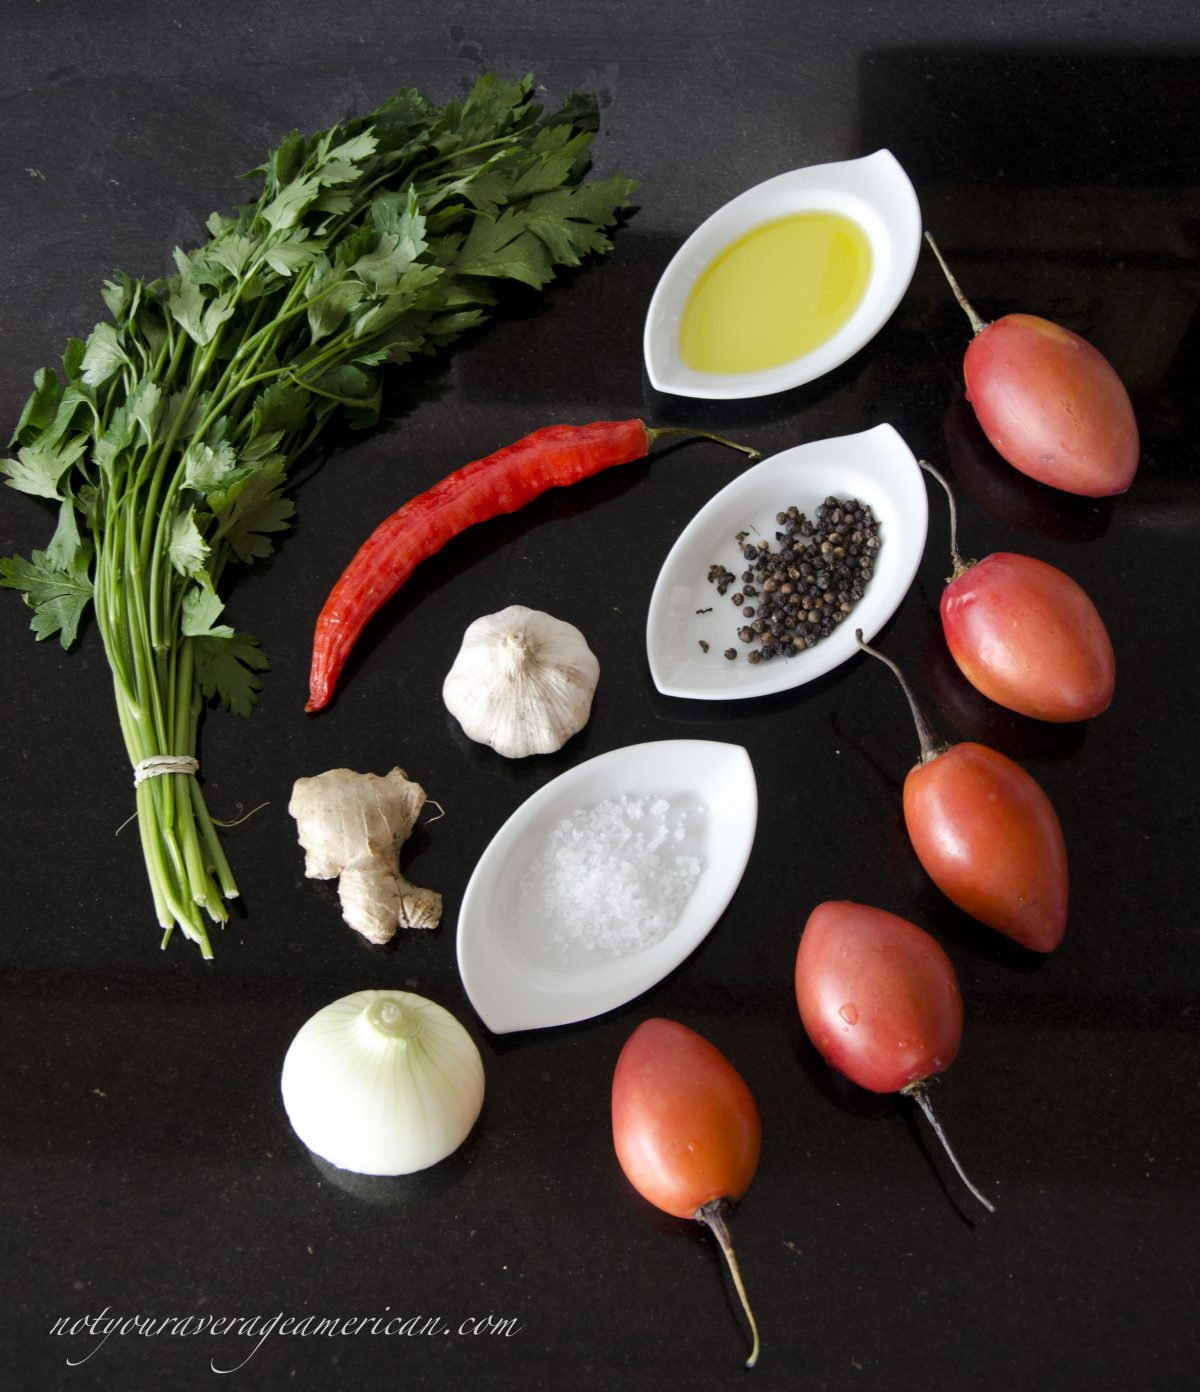 Ingredients for Ecuadorian Hot Sauce with Ginger